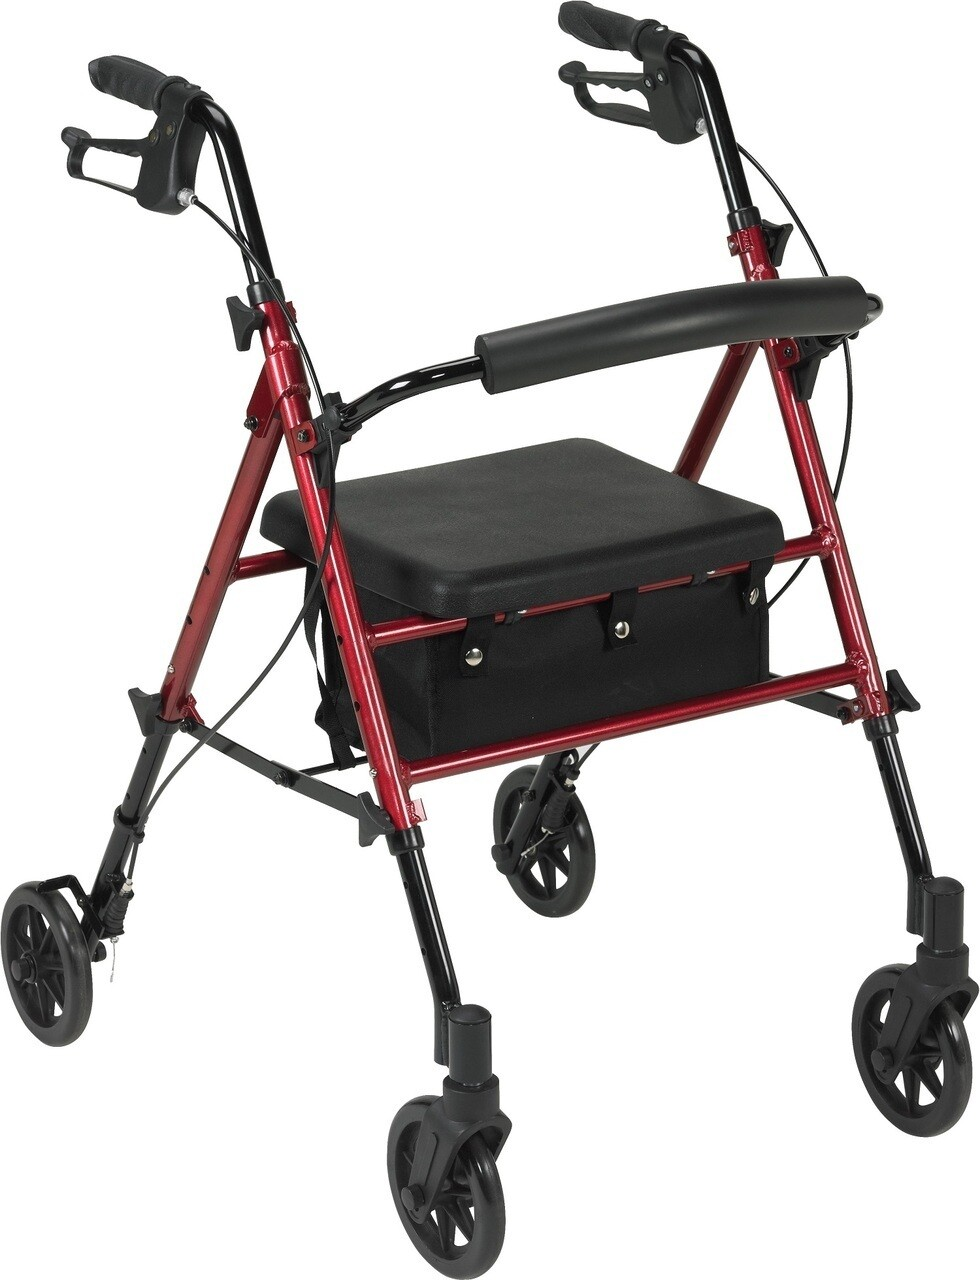 4 Wheel Walker Rental